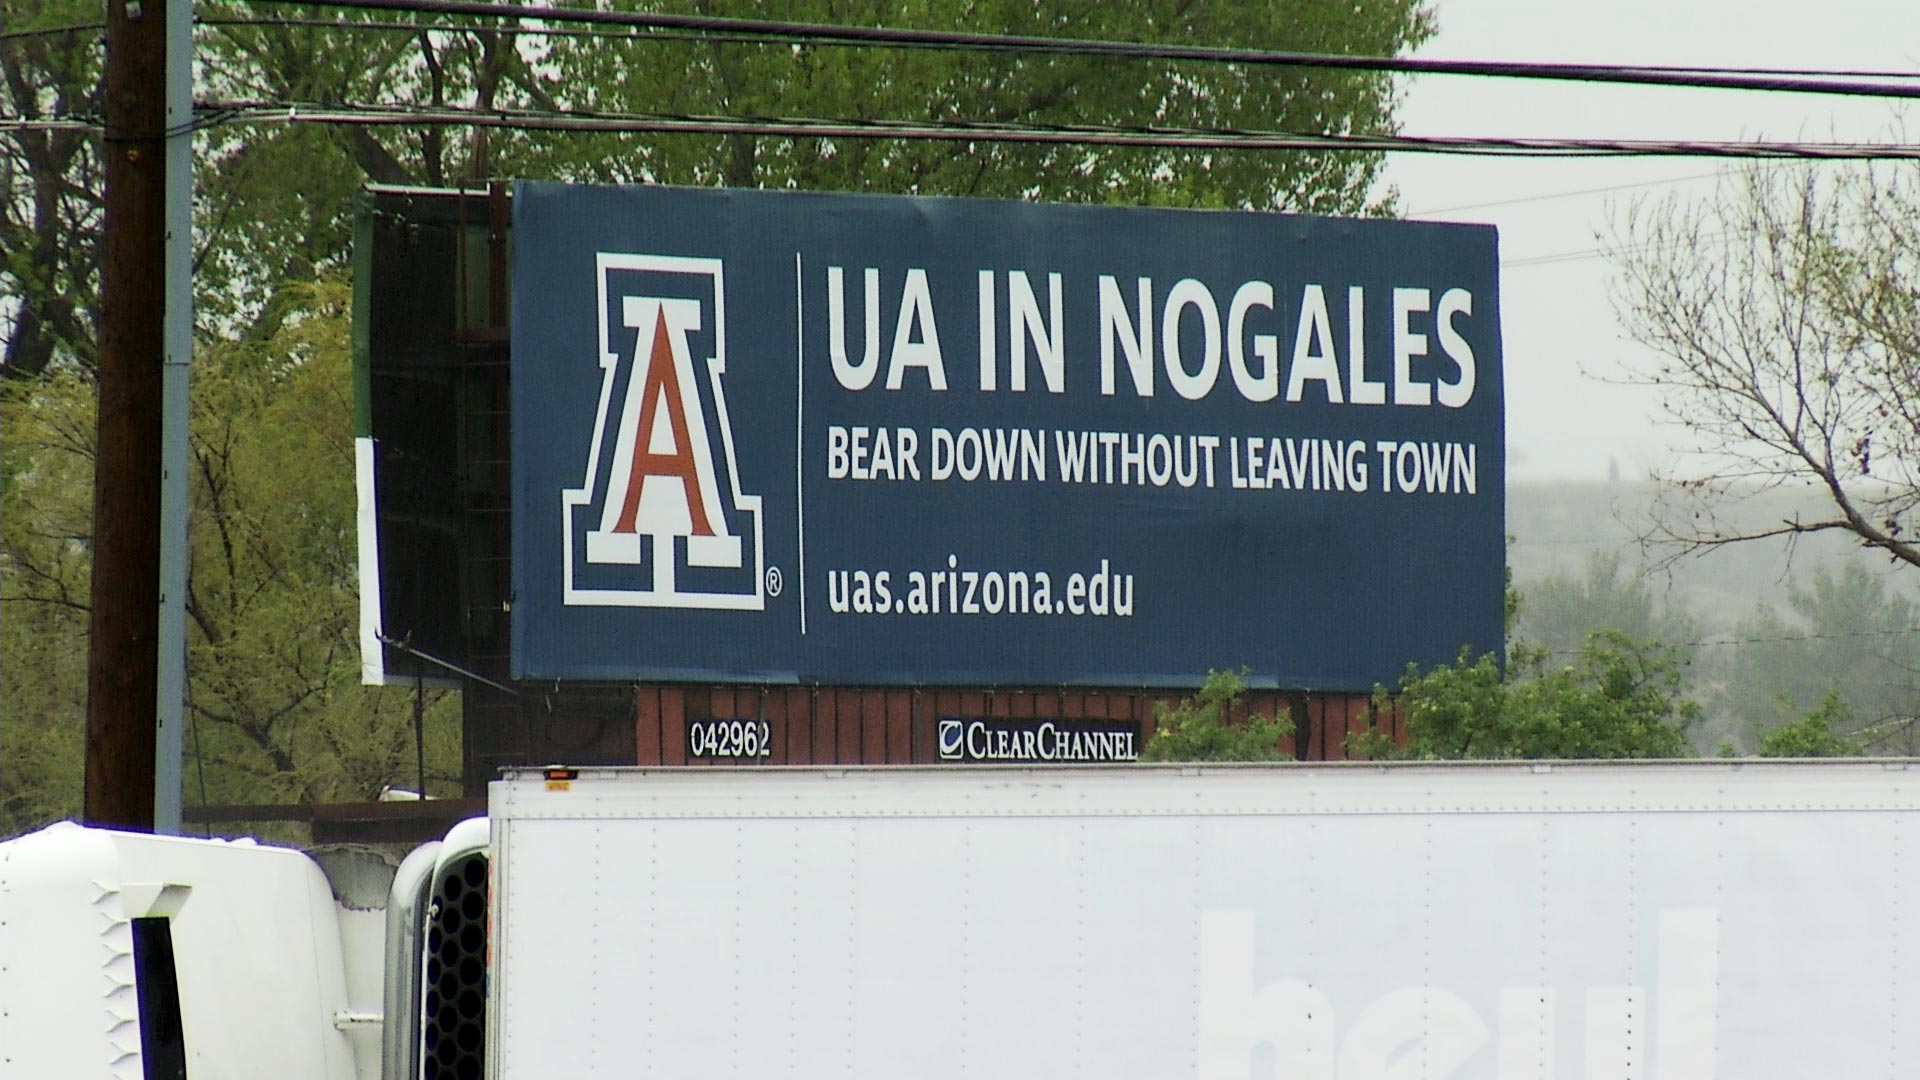 A billboard advertises University of Arizona programs offered in Nogales, Arizona.